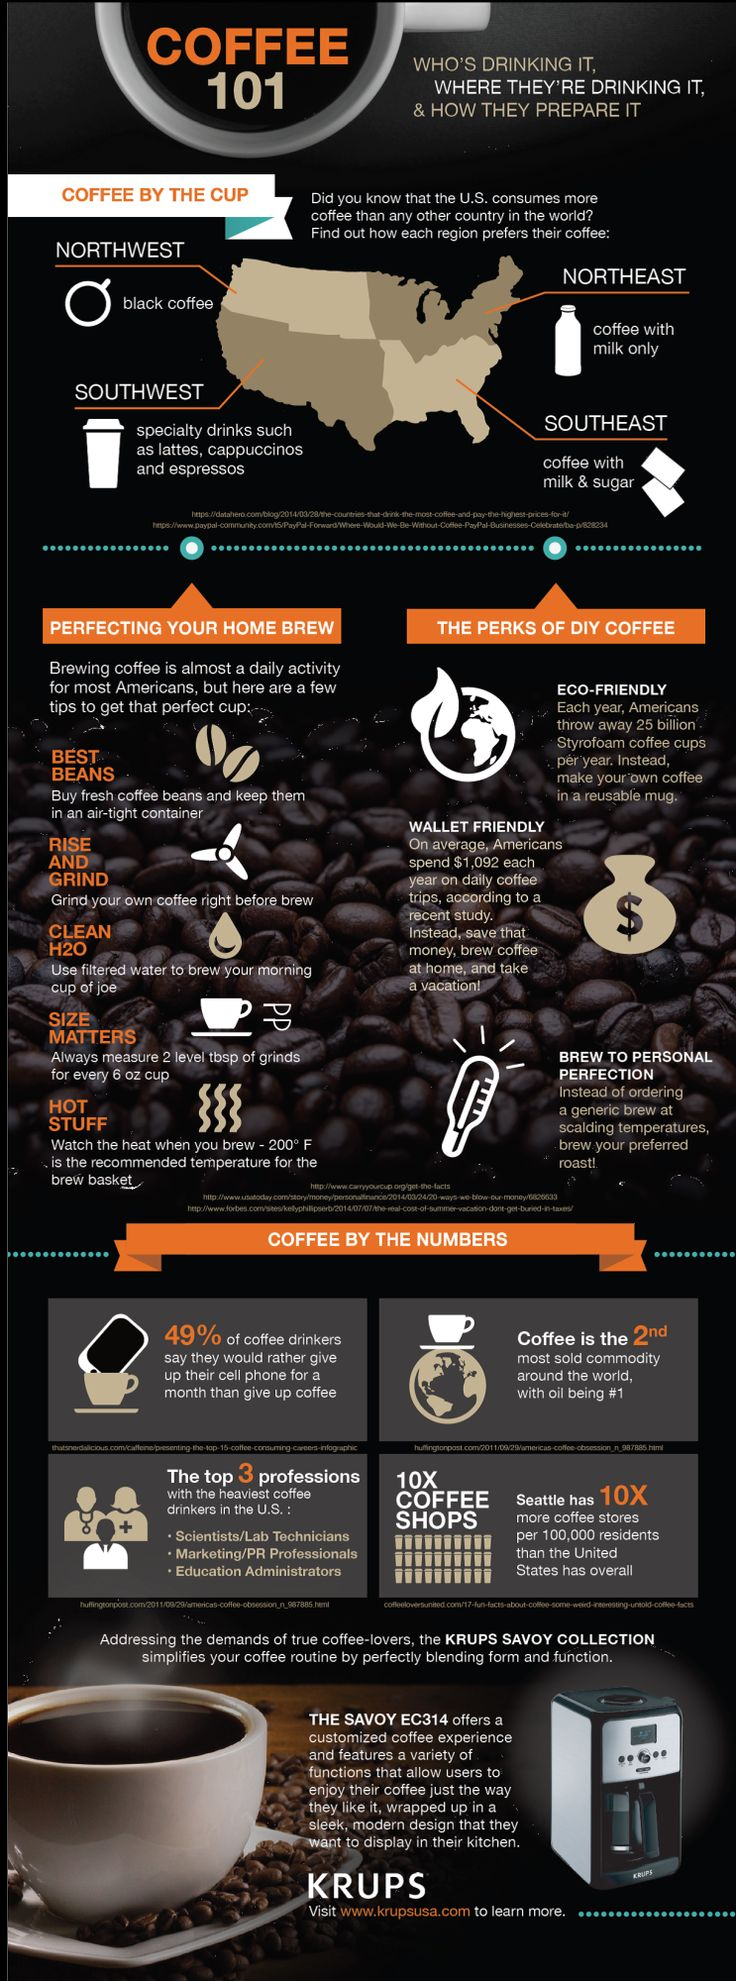 Coffee 101 with KRUPS